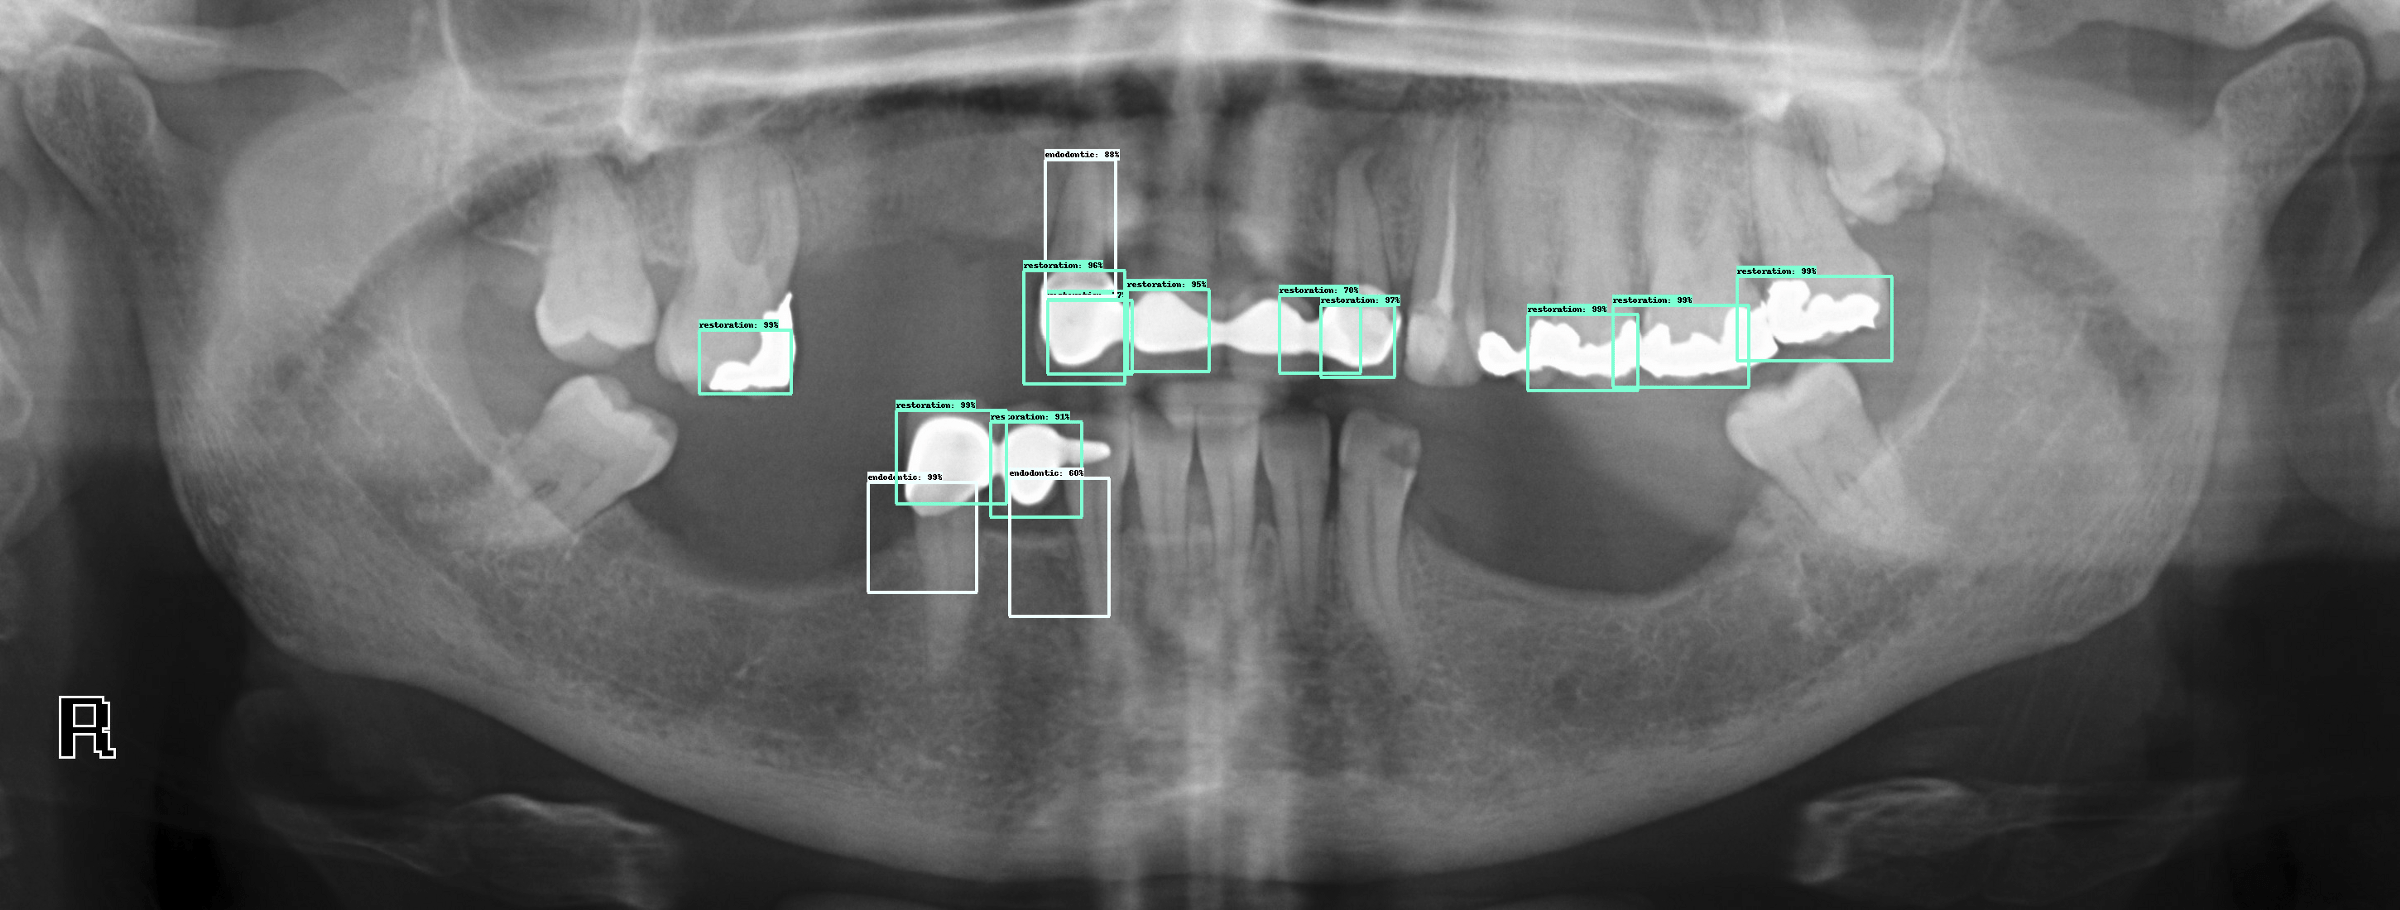 Deep Learning Object Detection On Dental X Rays Clement